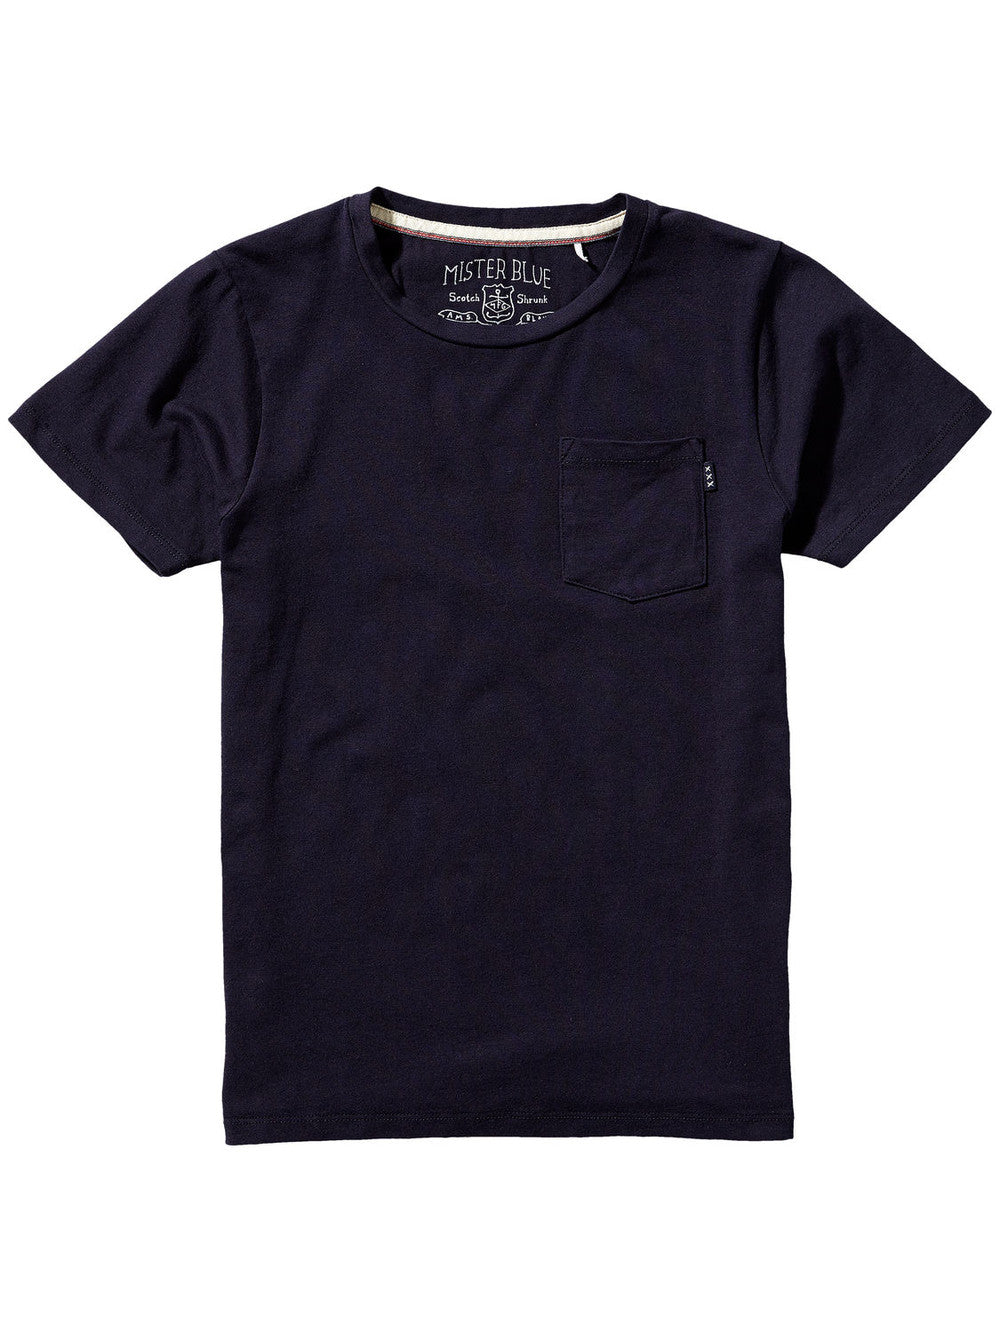 Scotch & Soda Boys Basic T-shirt Boys Shirts Scotch Shrunk [Petit_New_York]